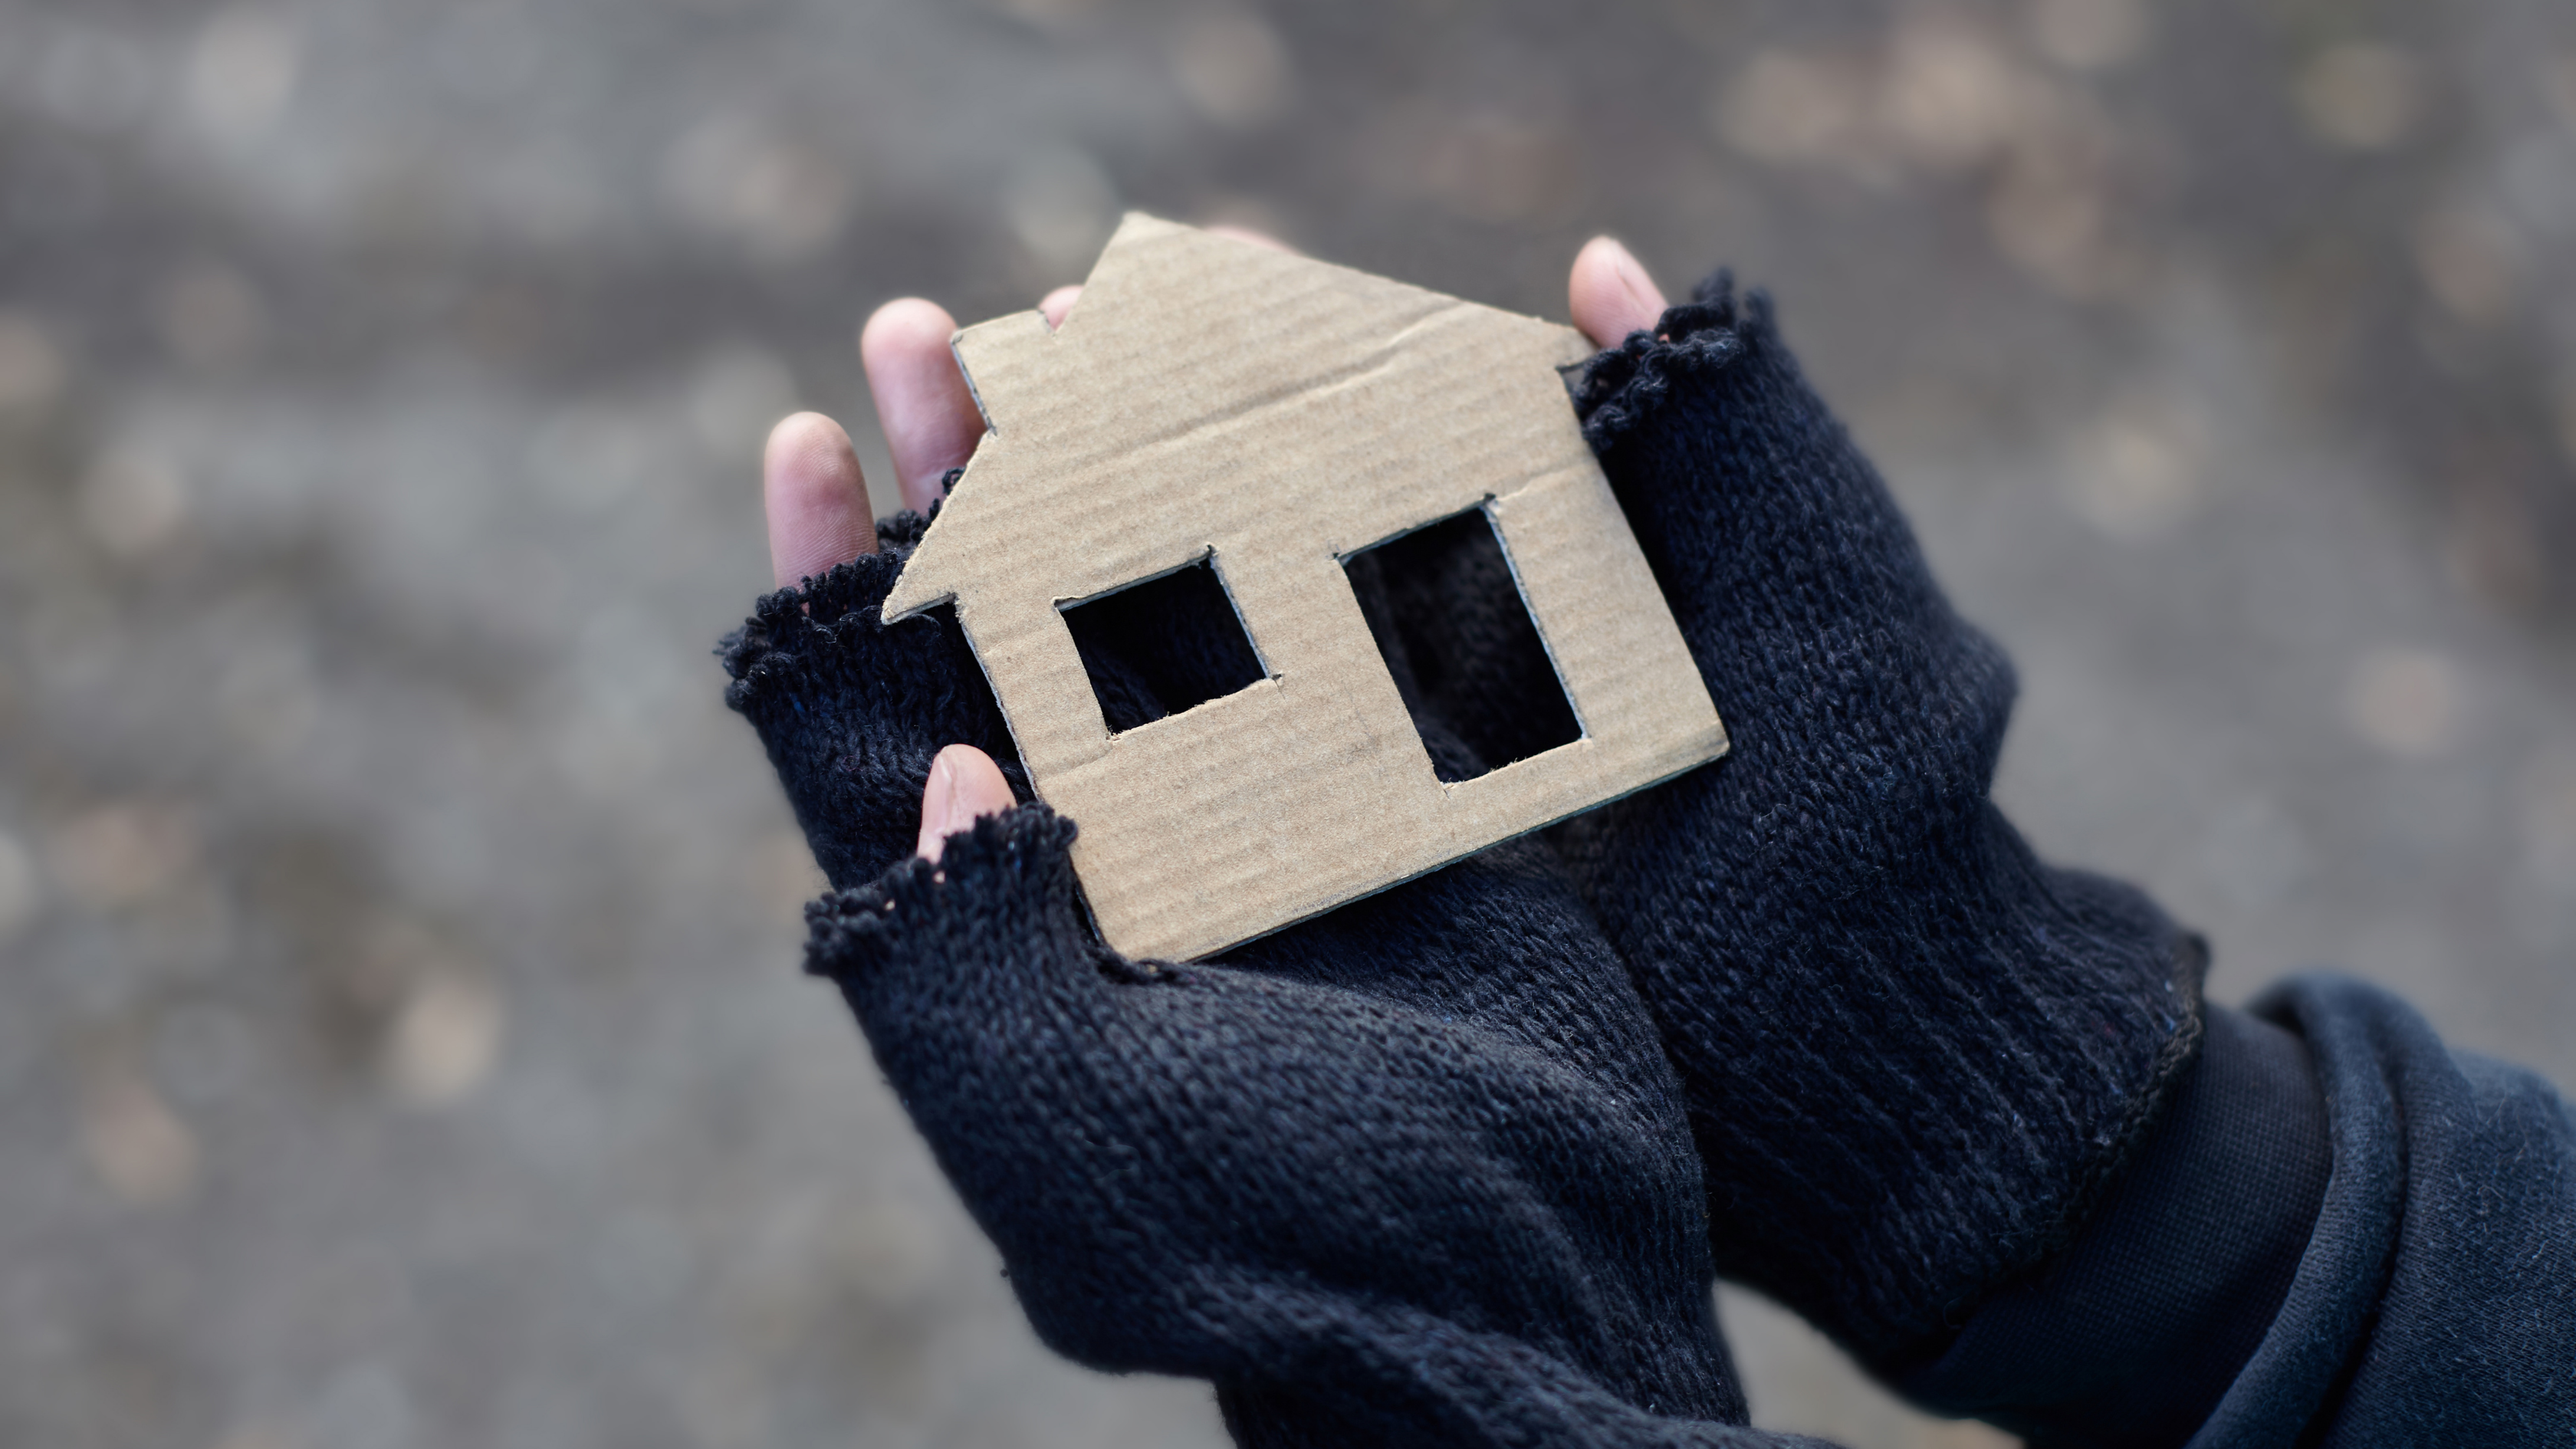 Hands holding a house to demonstrate people struggling with homelessness